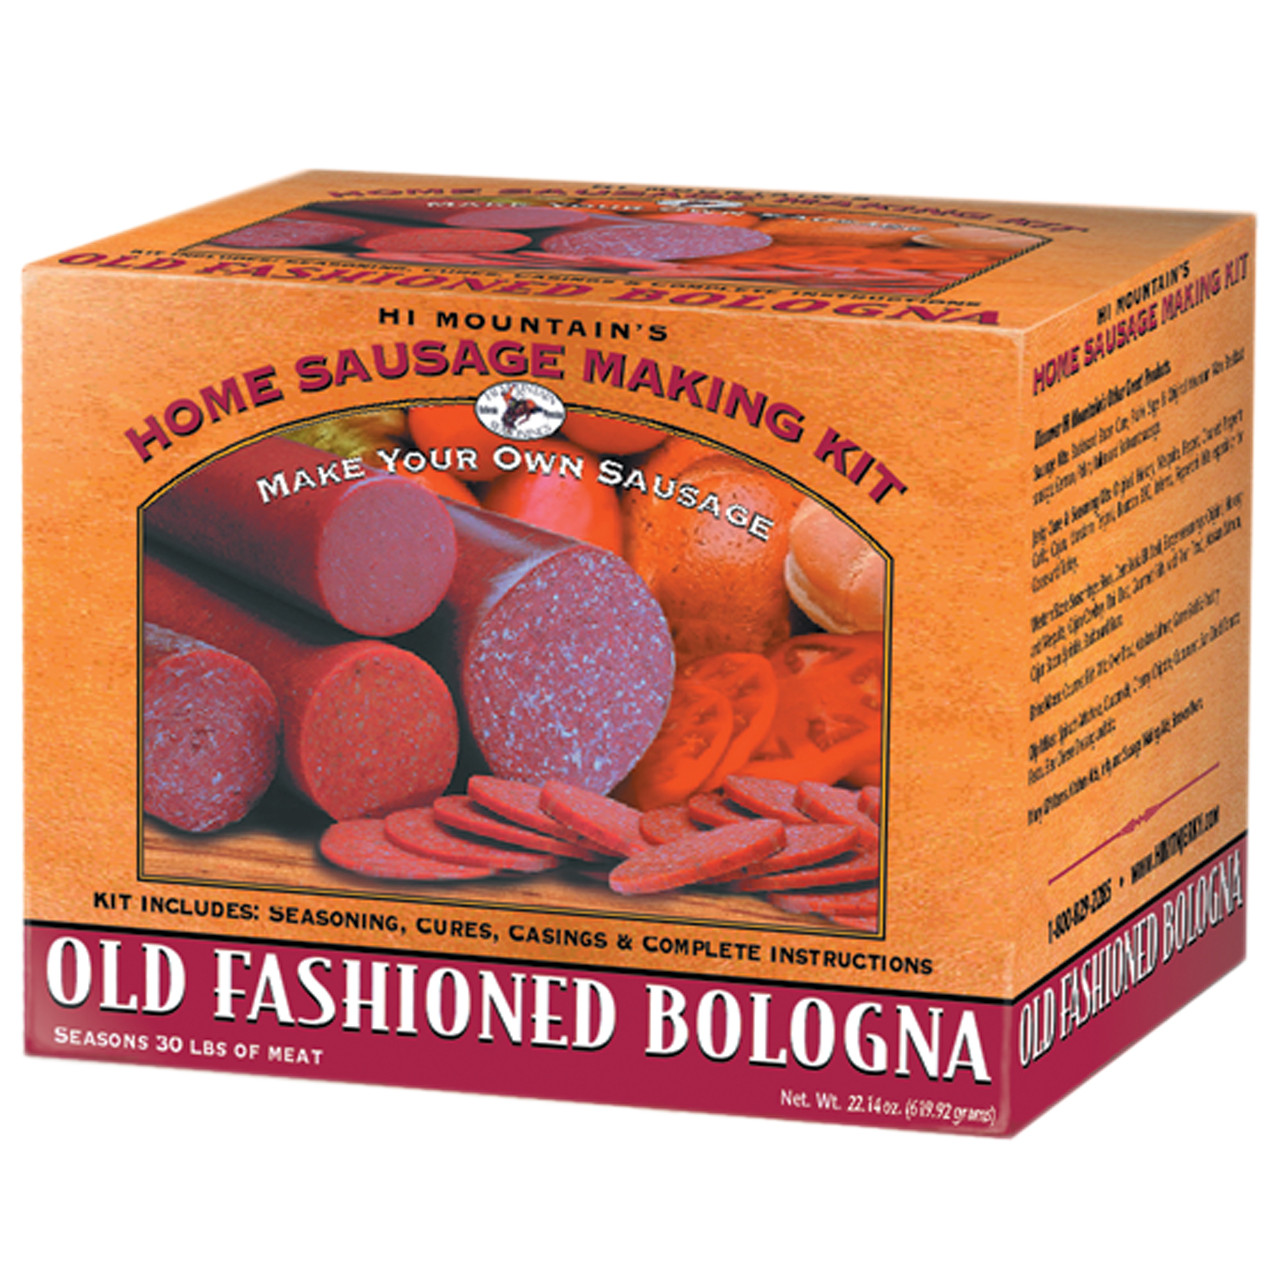 Old Fashioned Bologna Kit